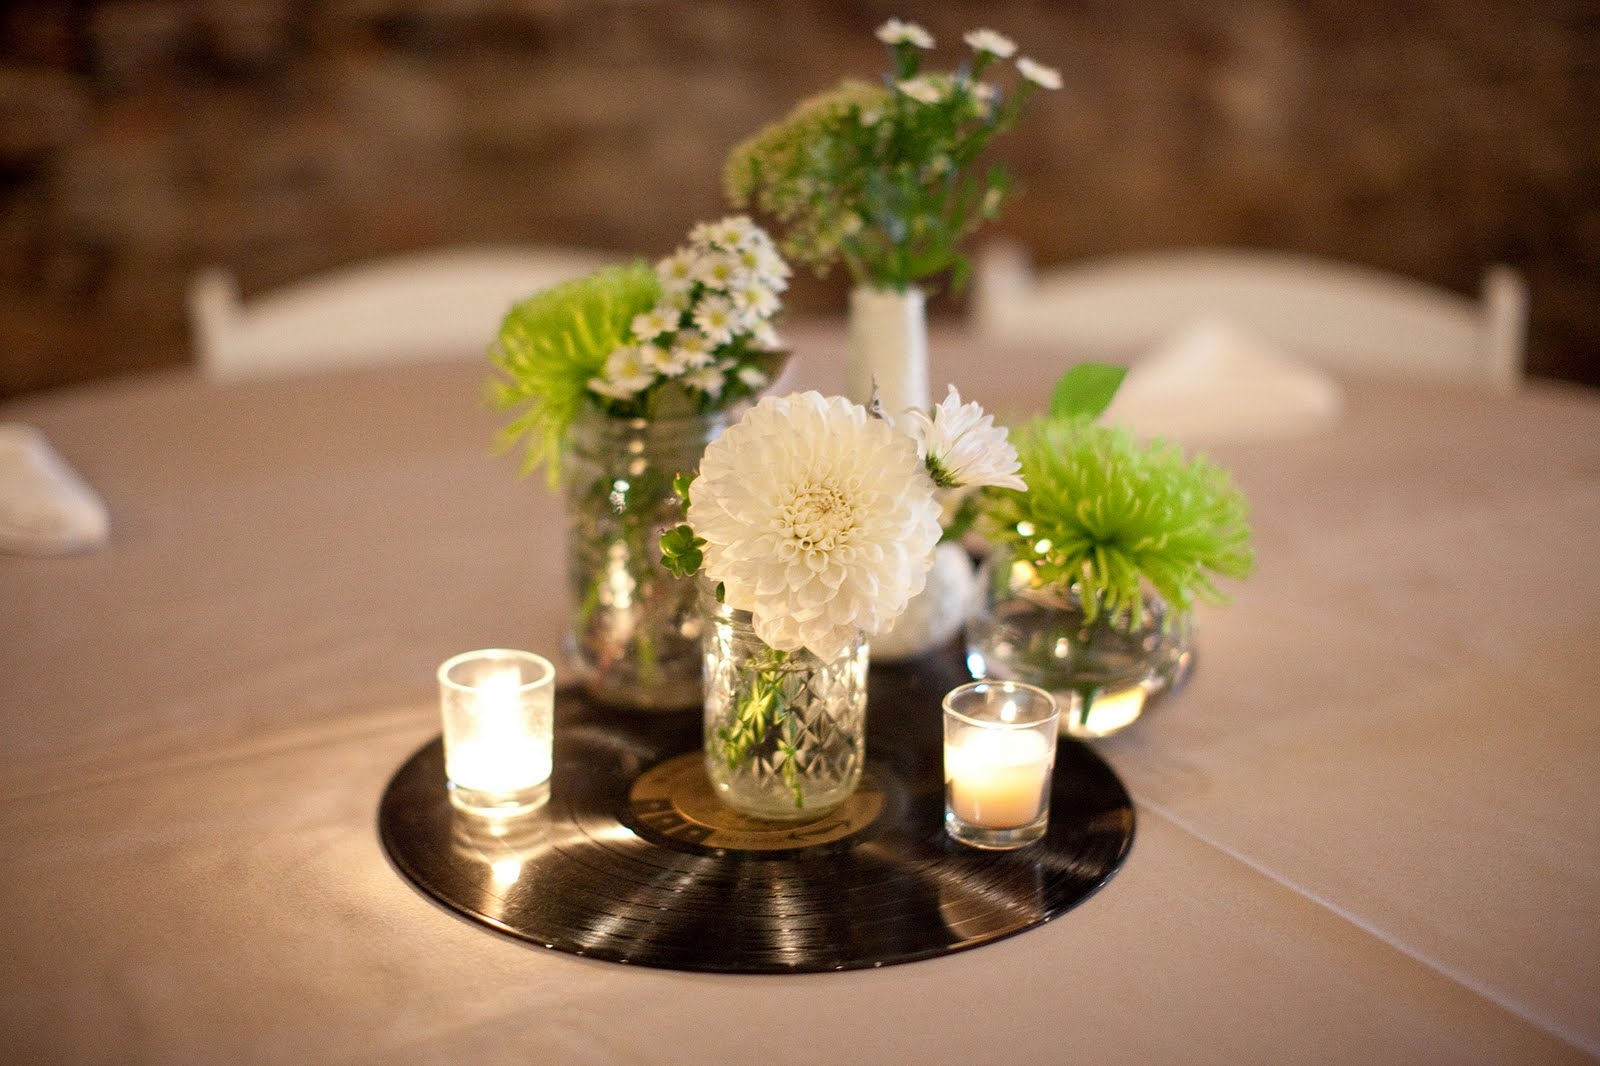 Music themed wedding julie blanner entertaining home design that cele - Deco table exterieur ...